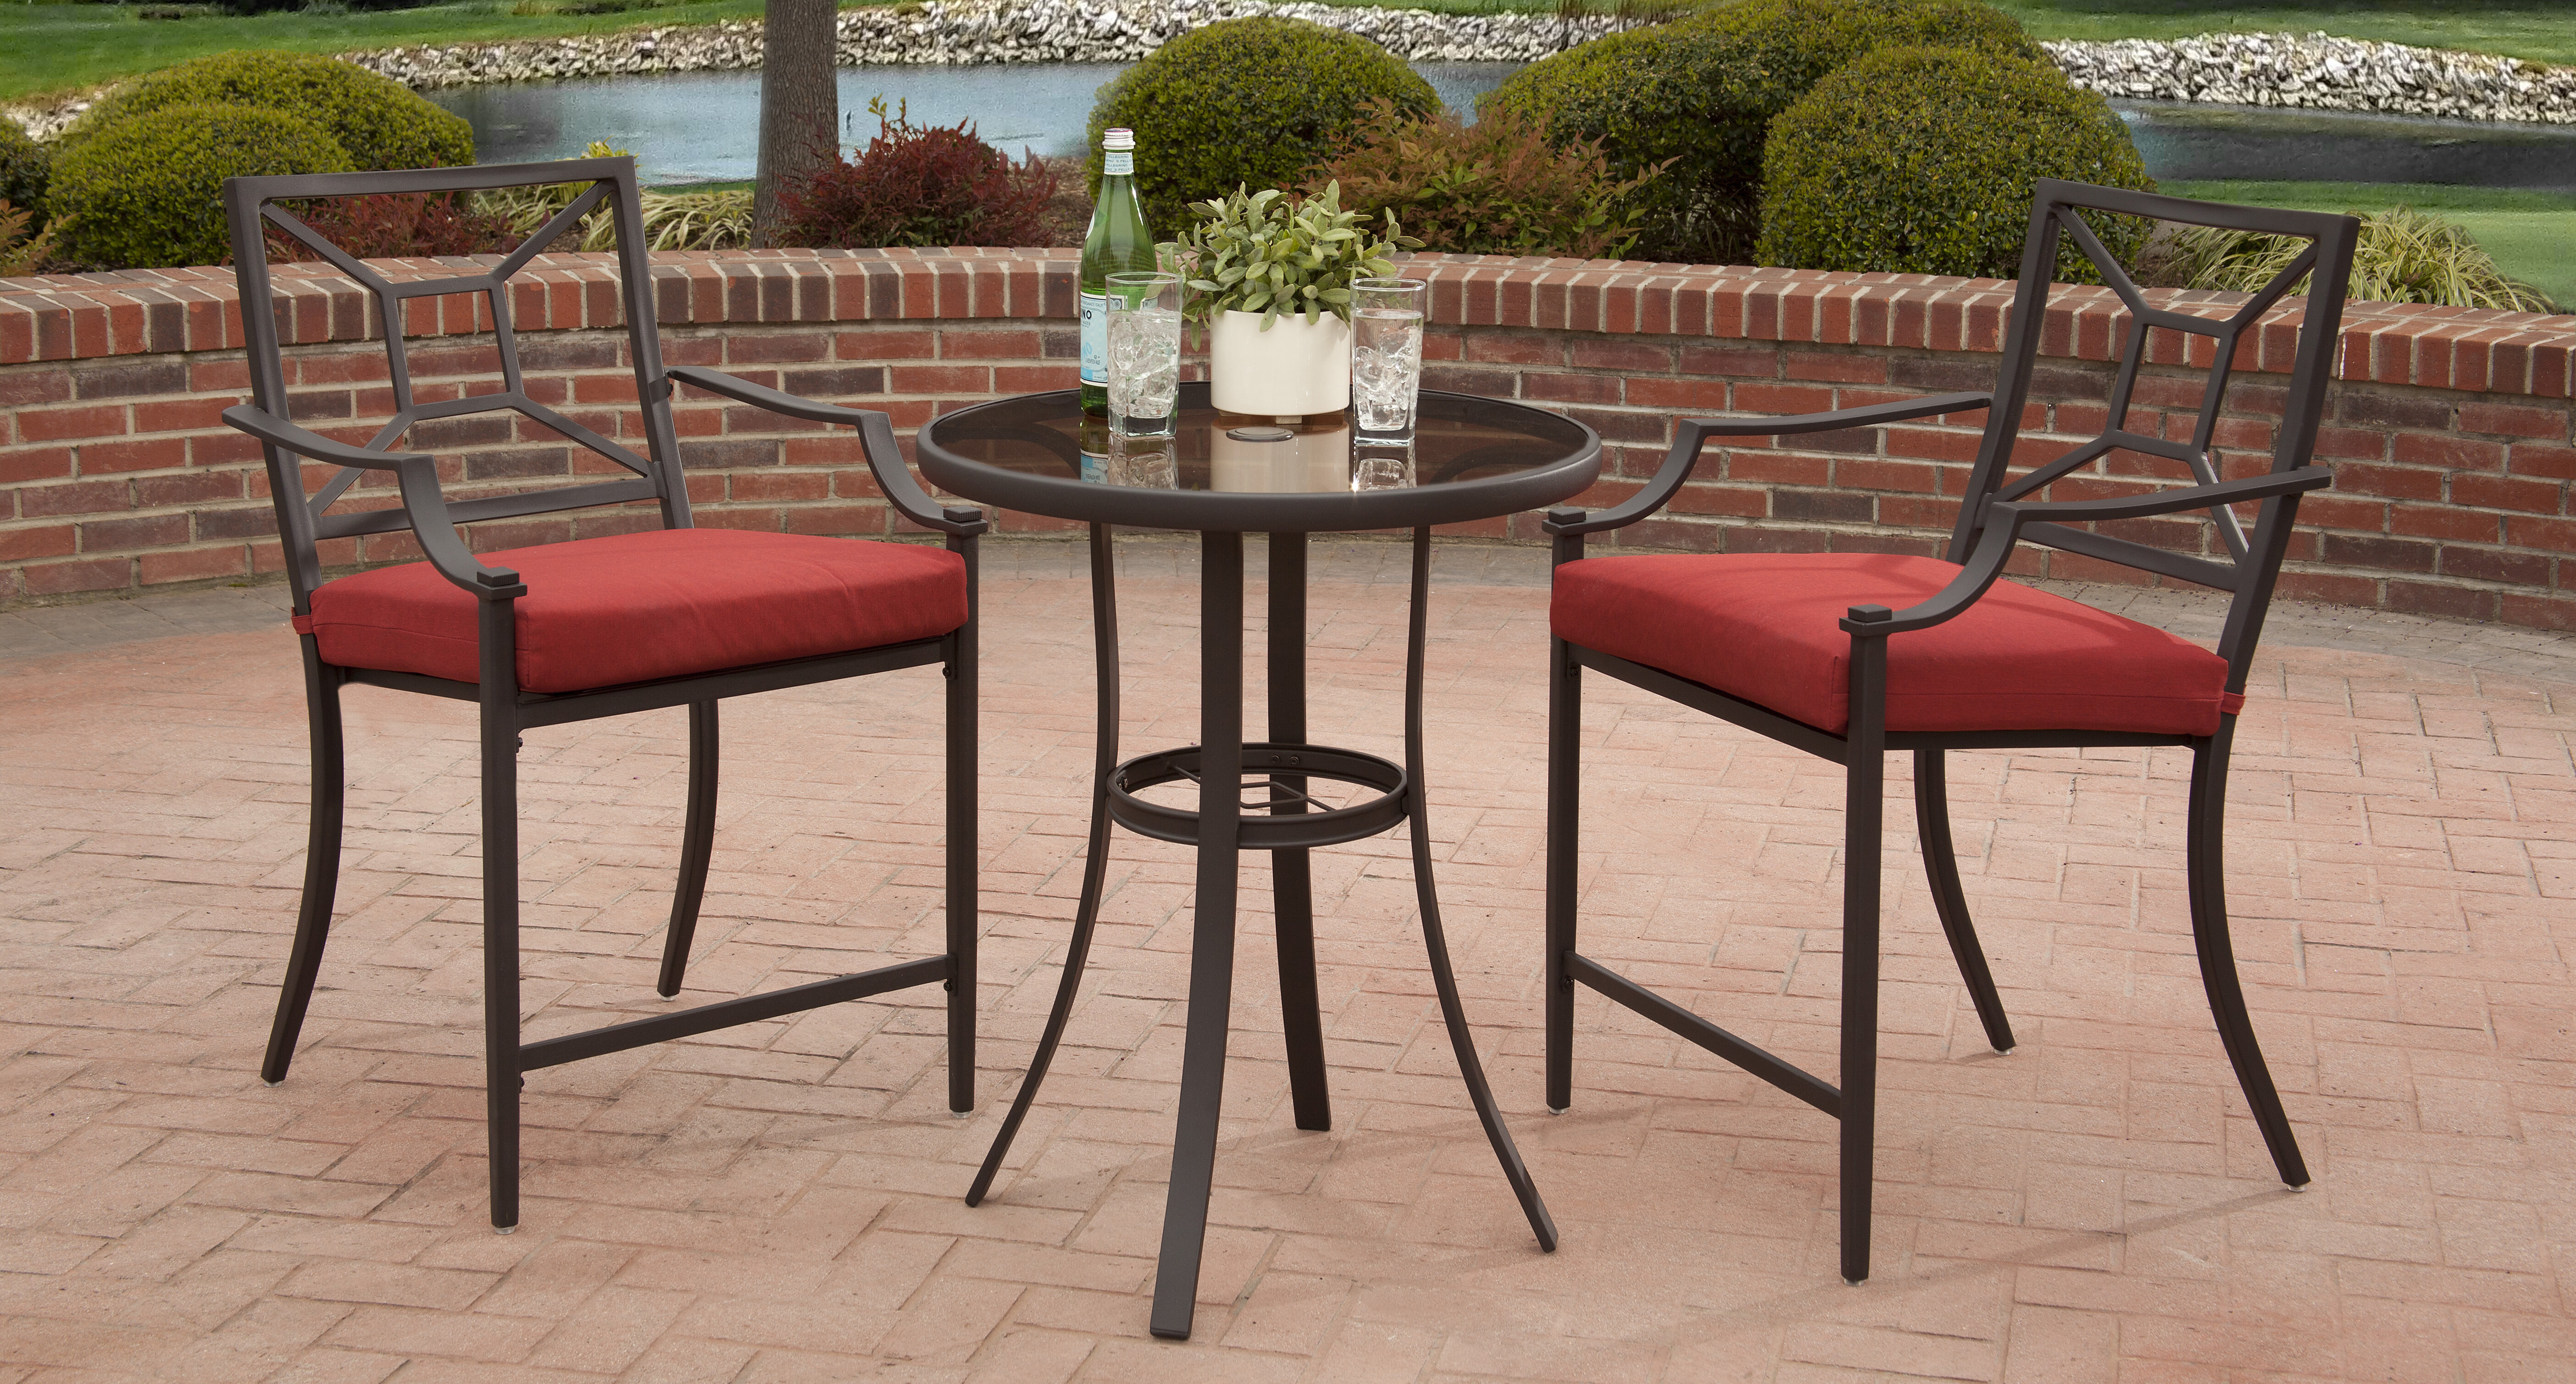 Ordinaire Laredo 3 Piece Bar Height Dining Set